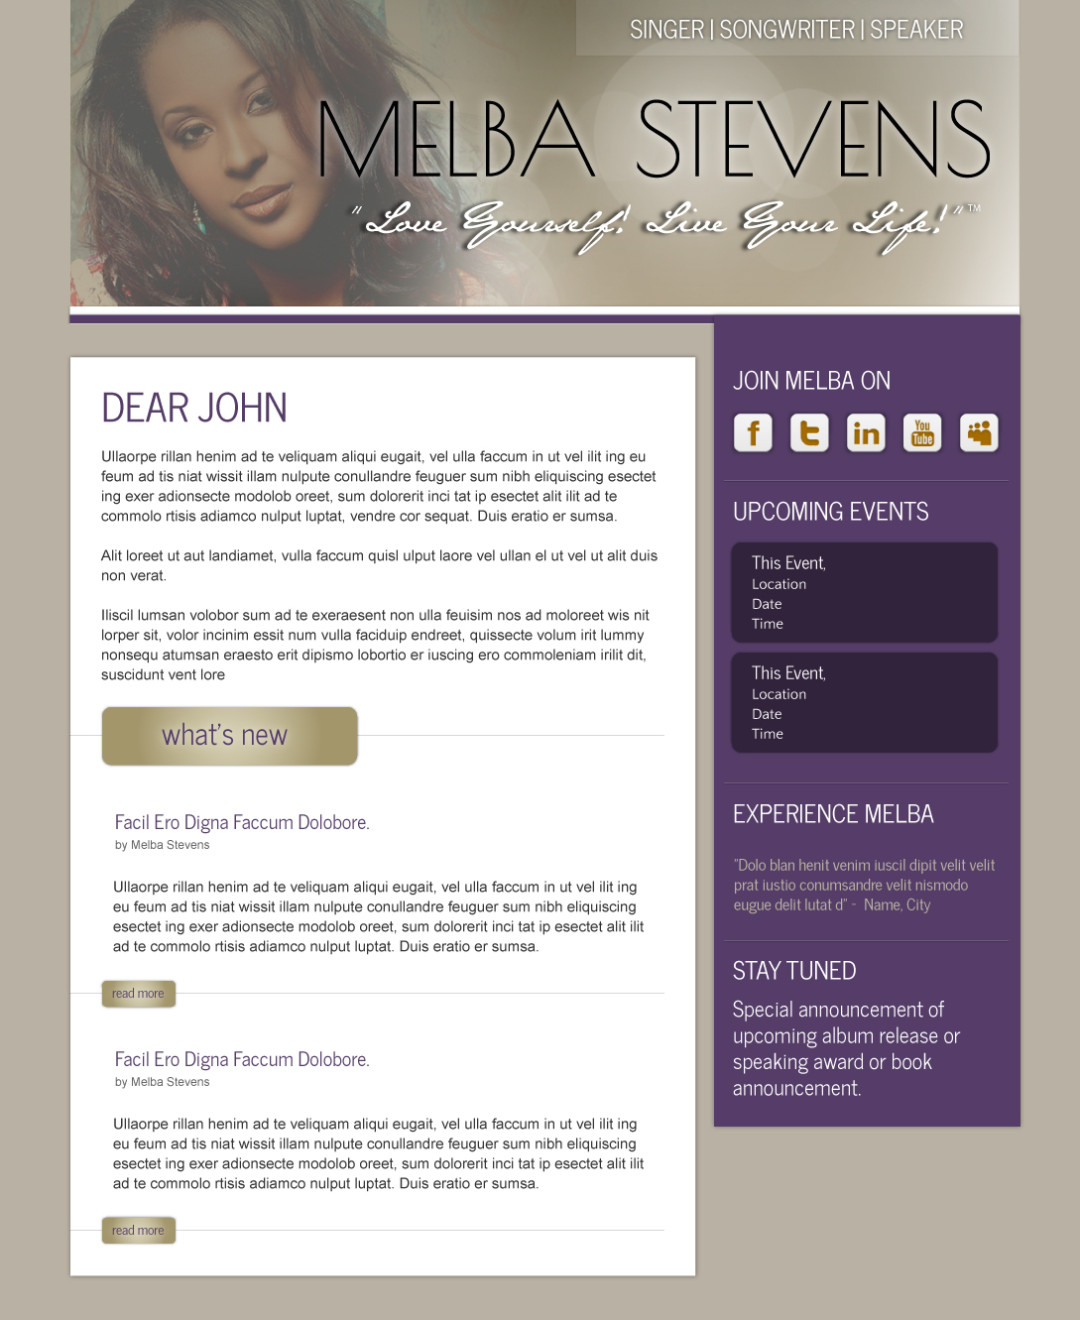 Email Marketing Newsletter for Melba Stevens